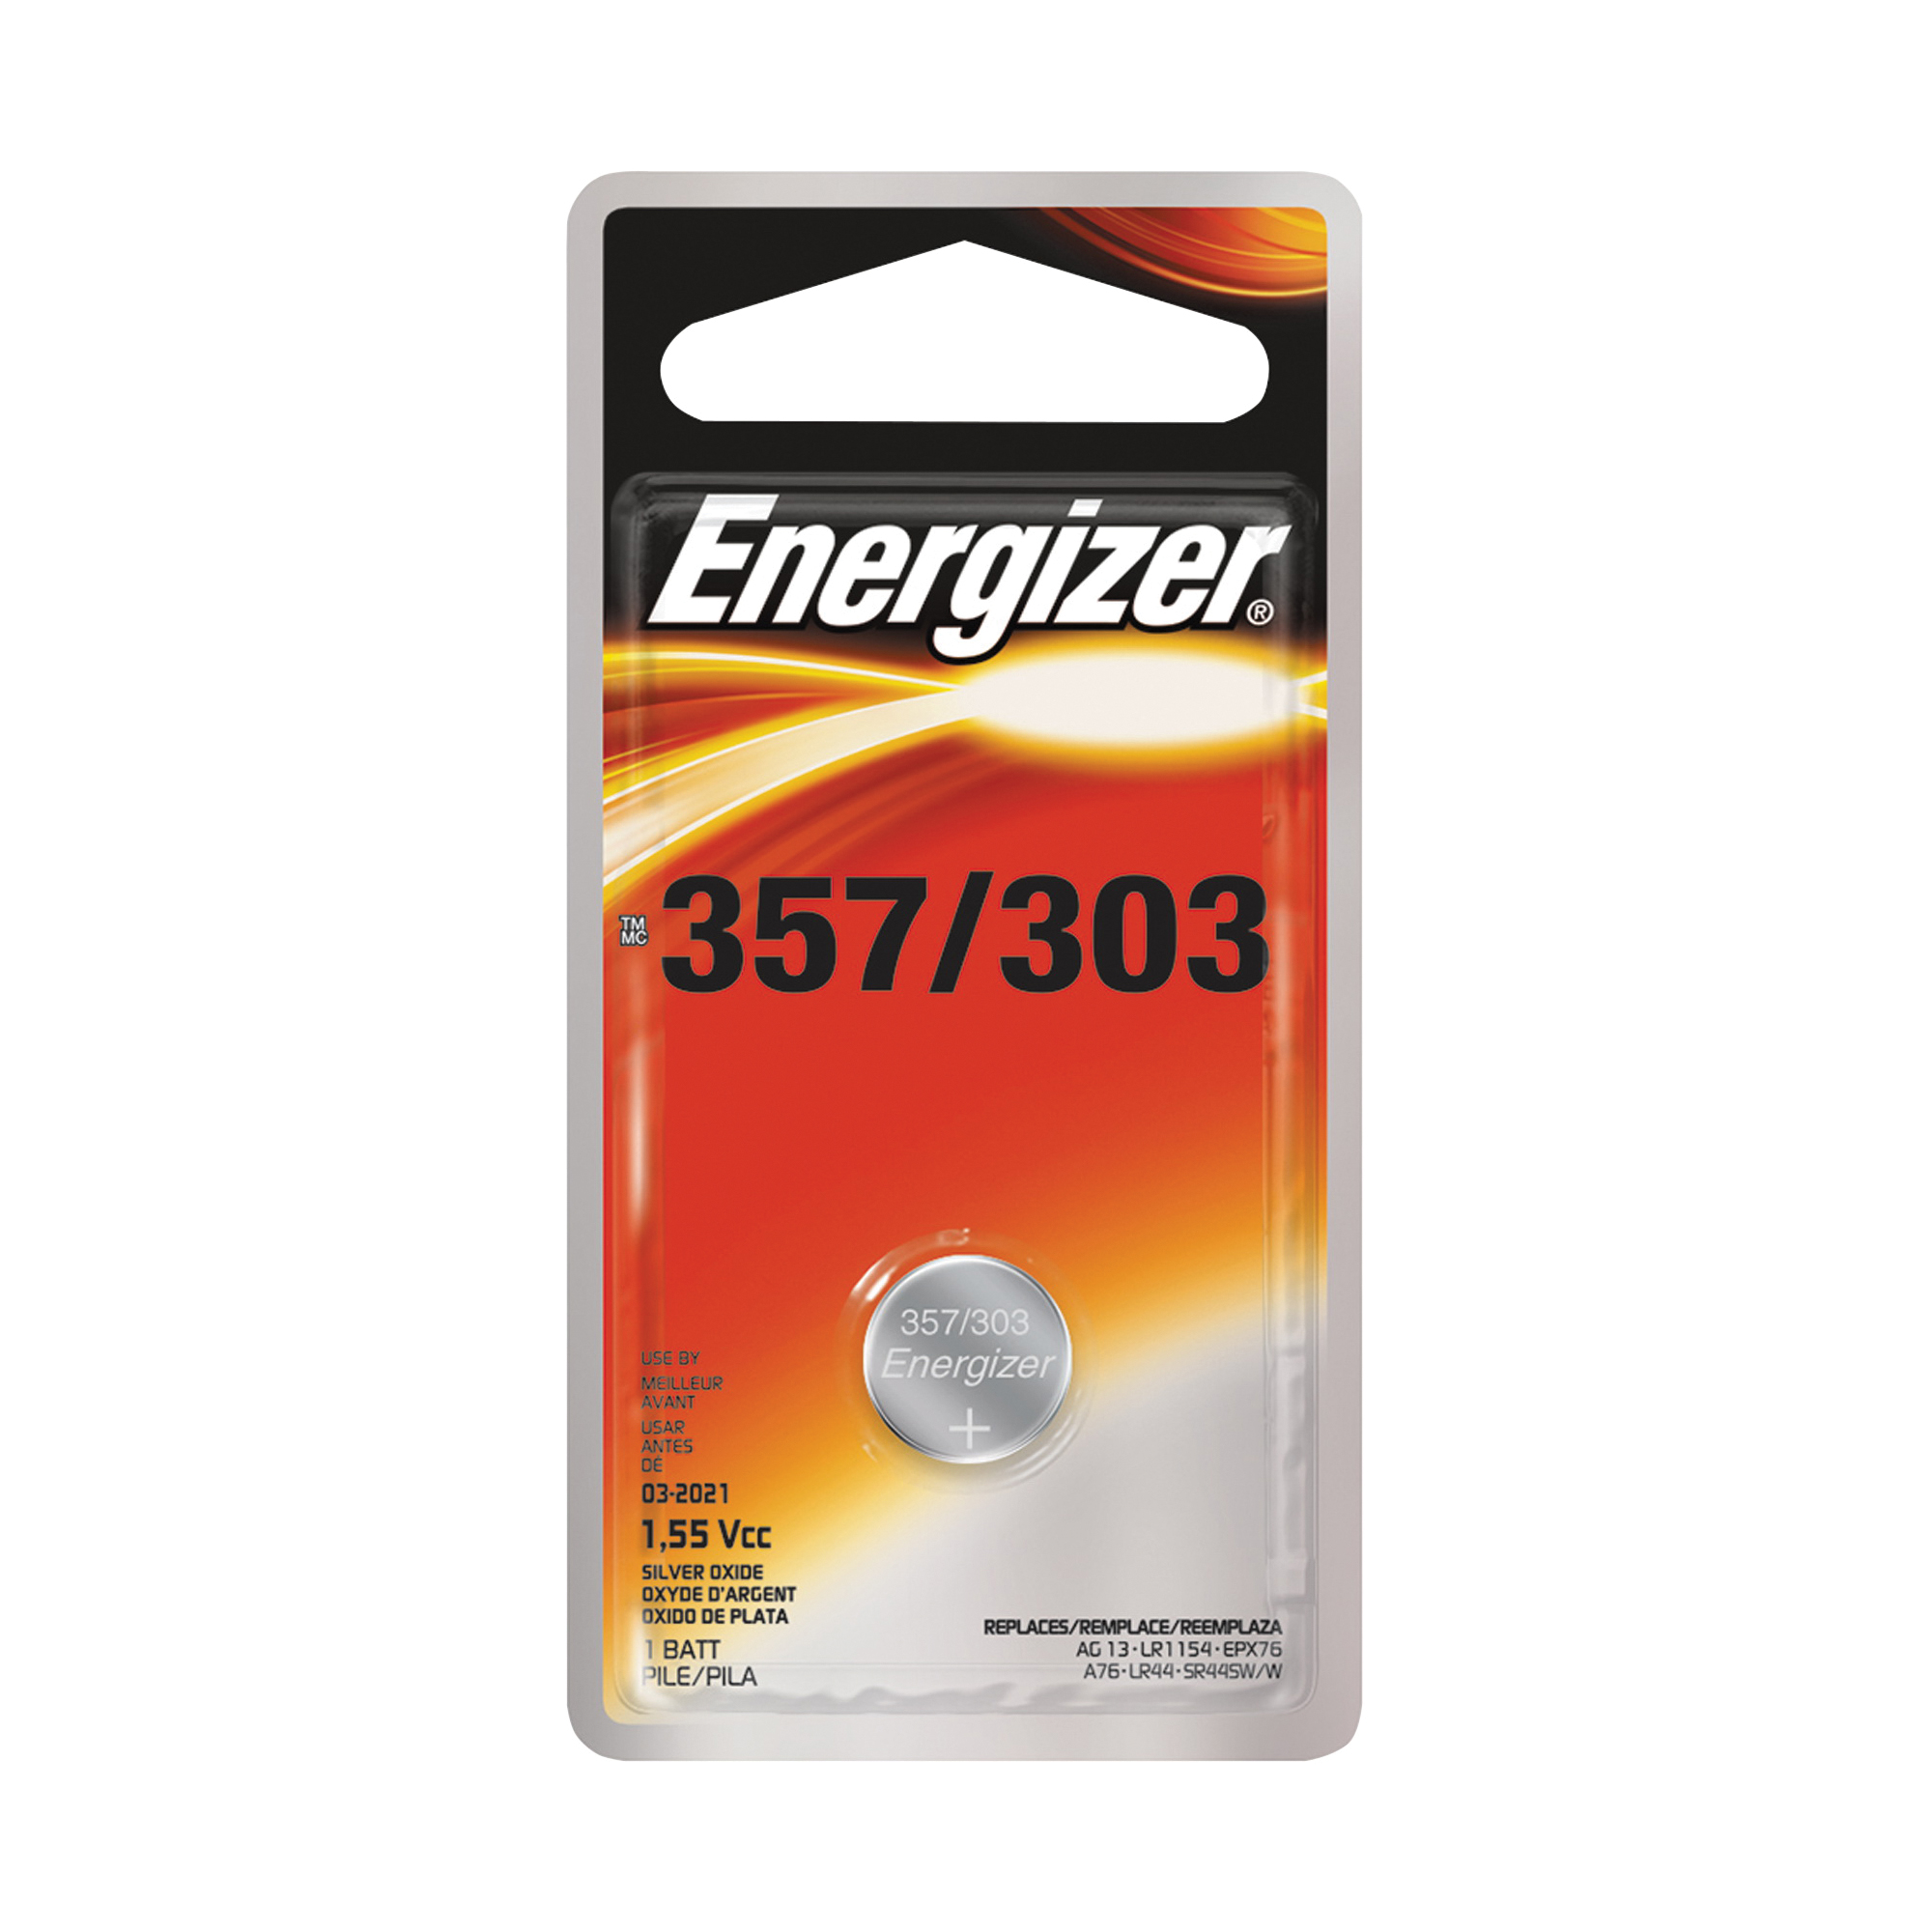 Picture of Energizer 357BPZ Coin Cell Battery, 1.5 V Battery, 150 mAh, 357 Battery, Silver Oxide